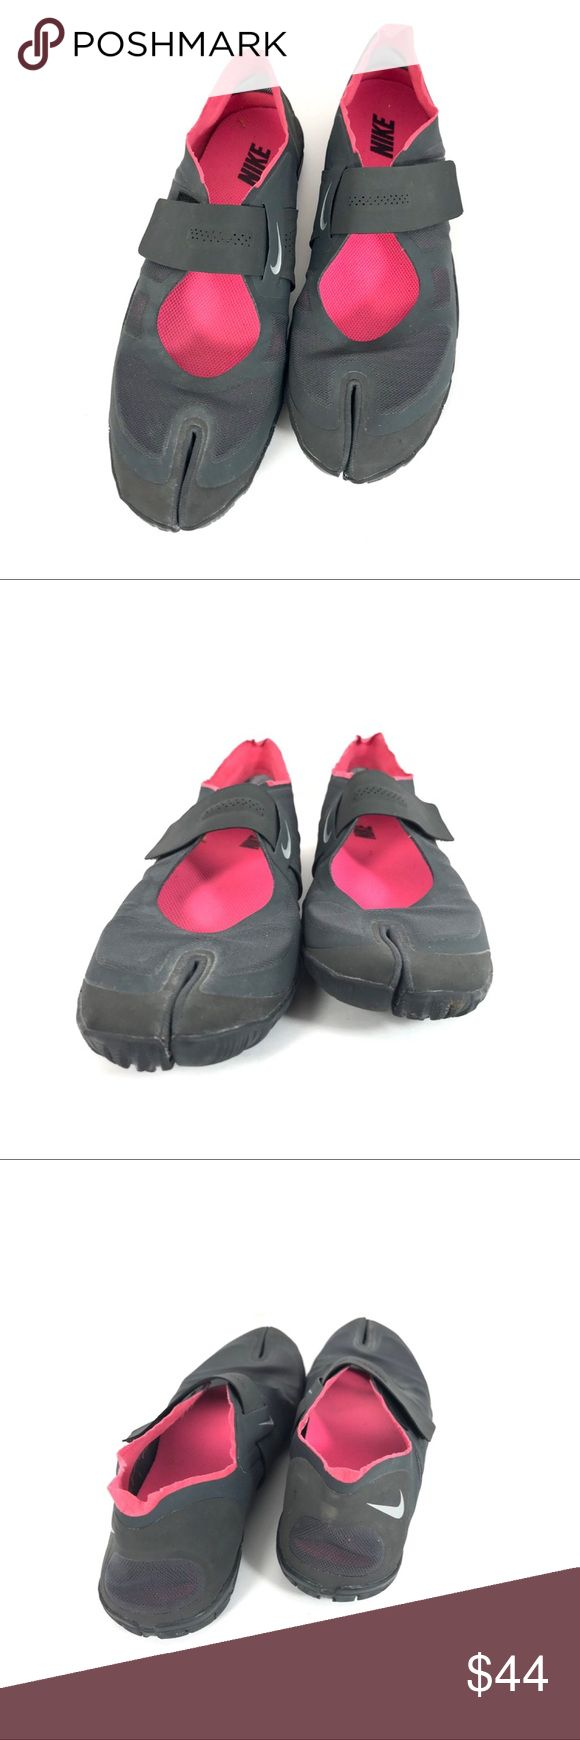 Nike Air Rift Split Toe Nike Air Rift Split Toe Shoes Grey with pink interior  So fun and comfy  Super flexible and lightweight  Good used condition  Size 8.5 Nike Shoes Athletic Shoes